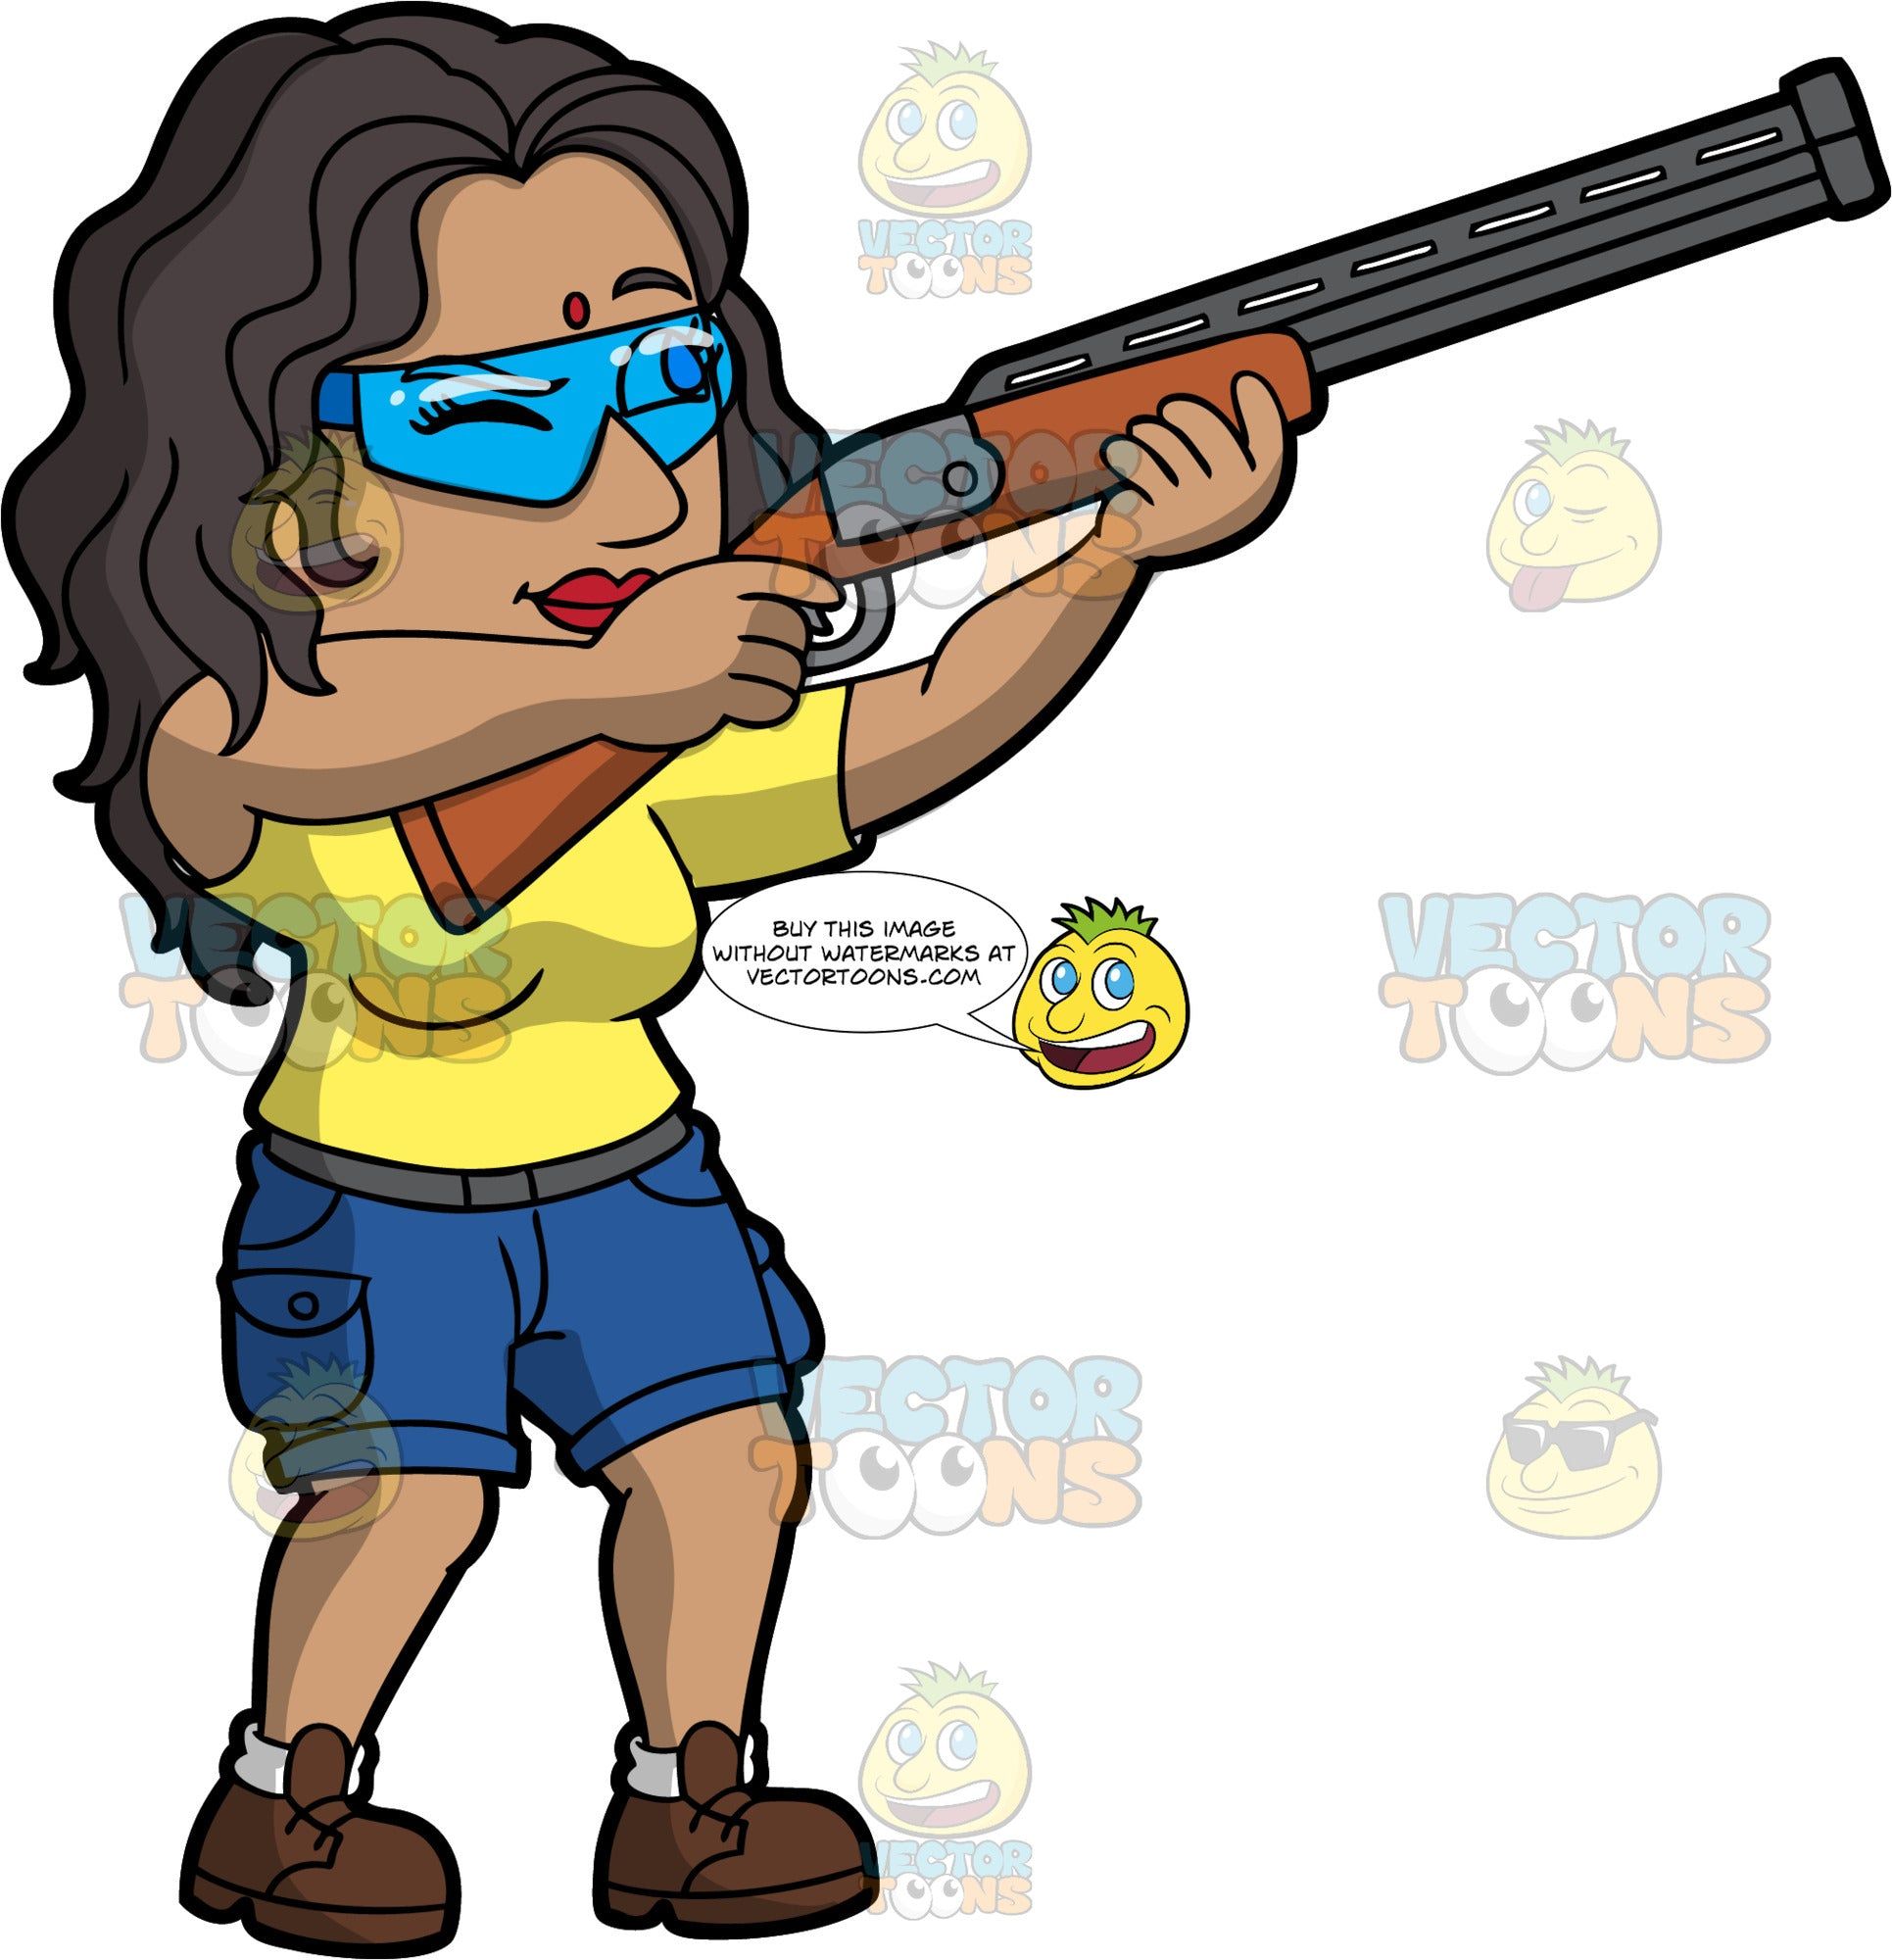 An Indian Woman Skeet Shooting. An Indian woman with long black hair, wearing blue shorts, a yellow t-shirt, brown shoes, and safety glasses, points her shotgun up, and closes one eye as she aims at a clay target